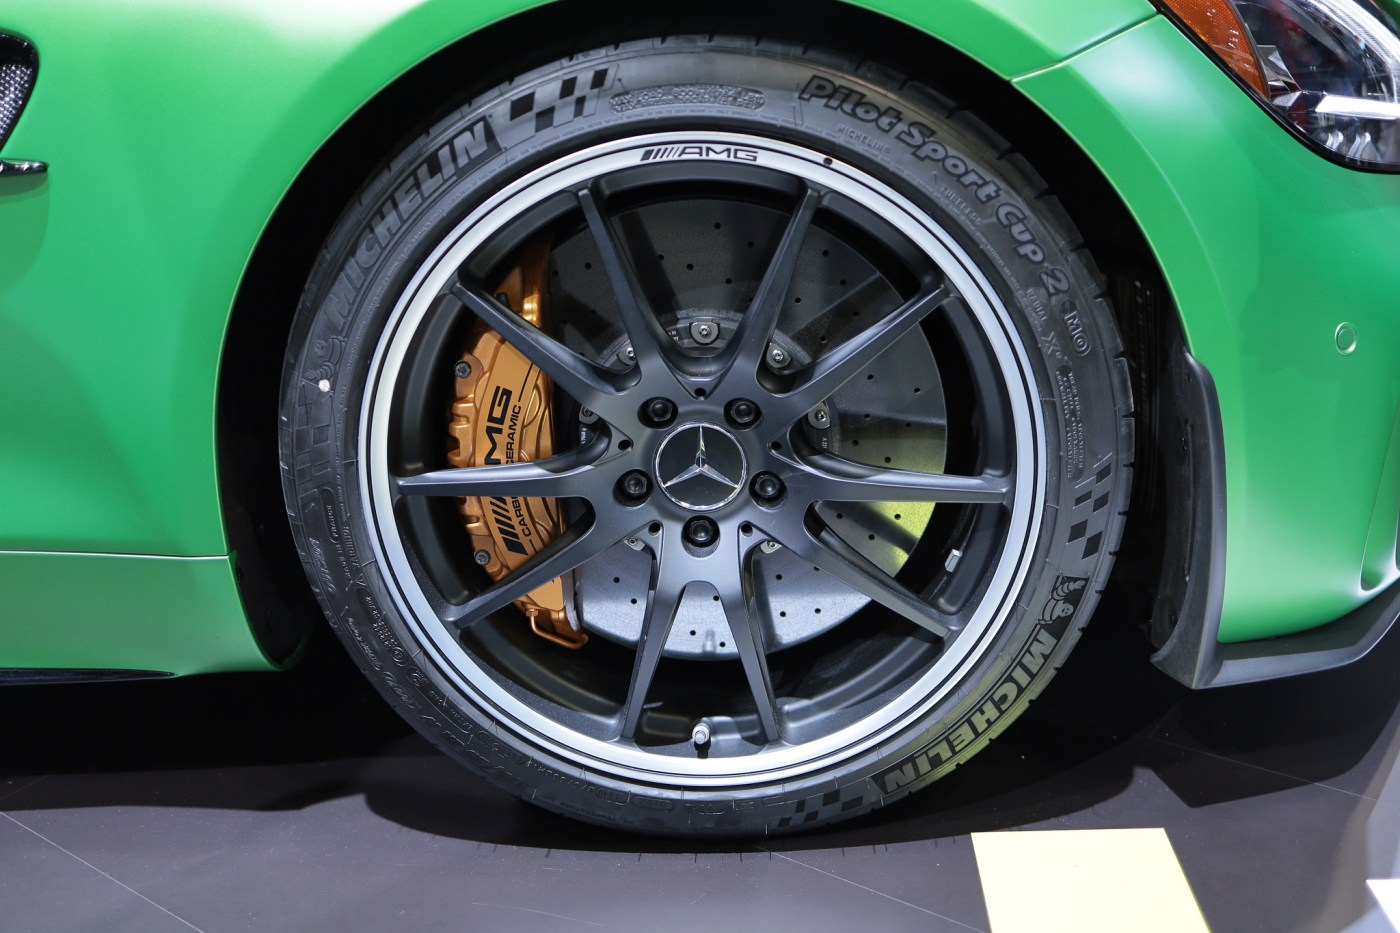 Mercedes AMG Wheel with carbon ceramic brakes